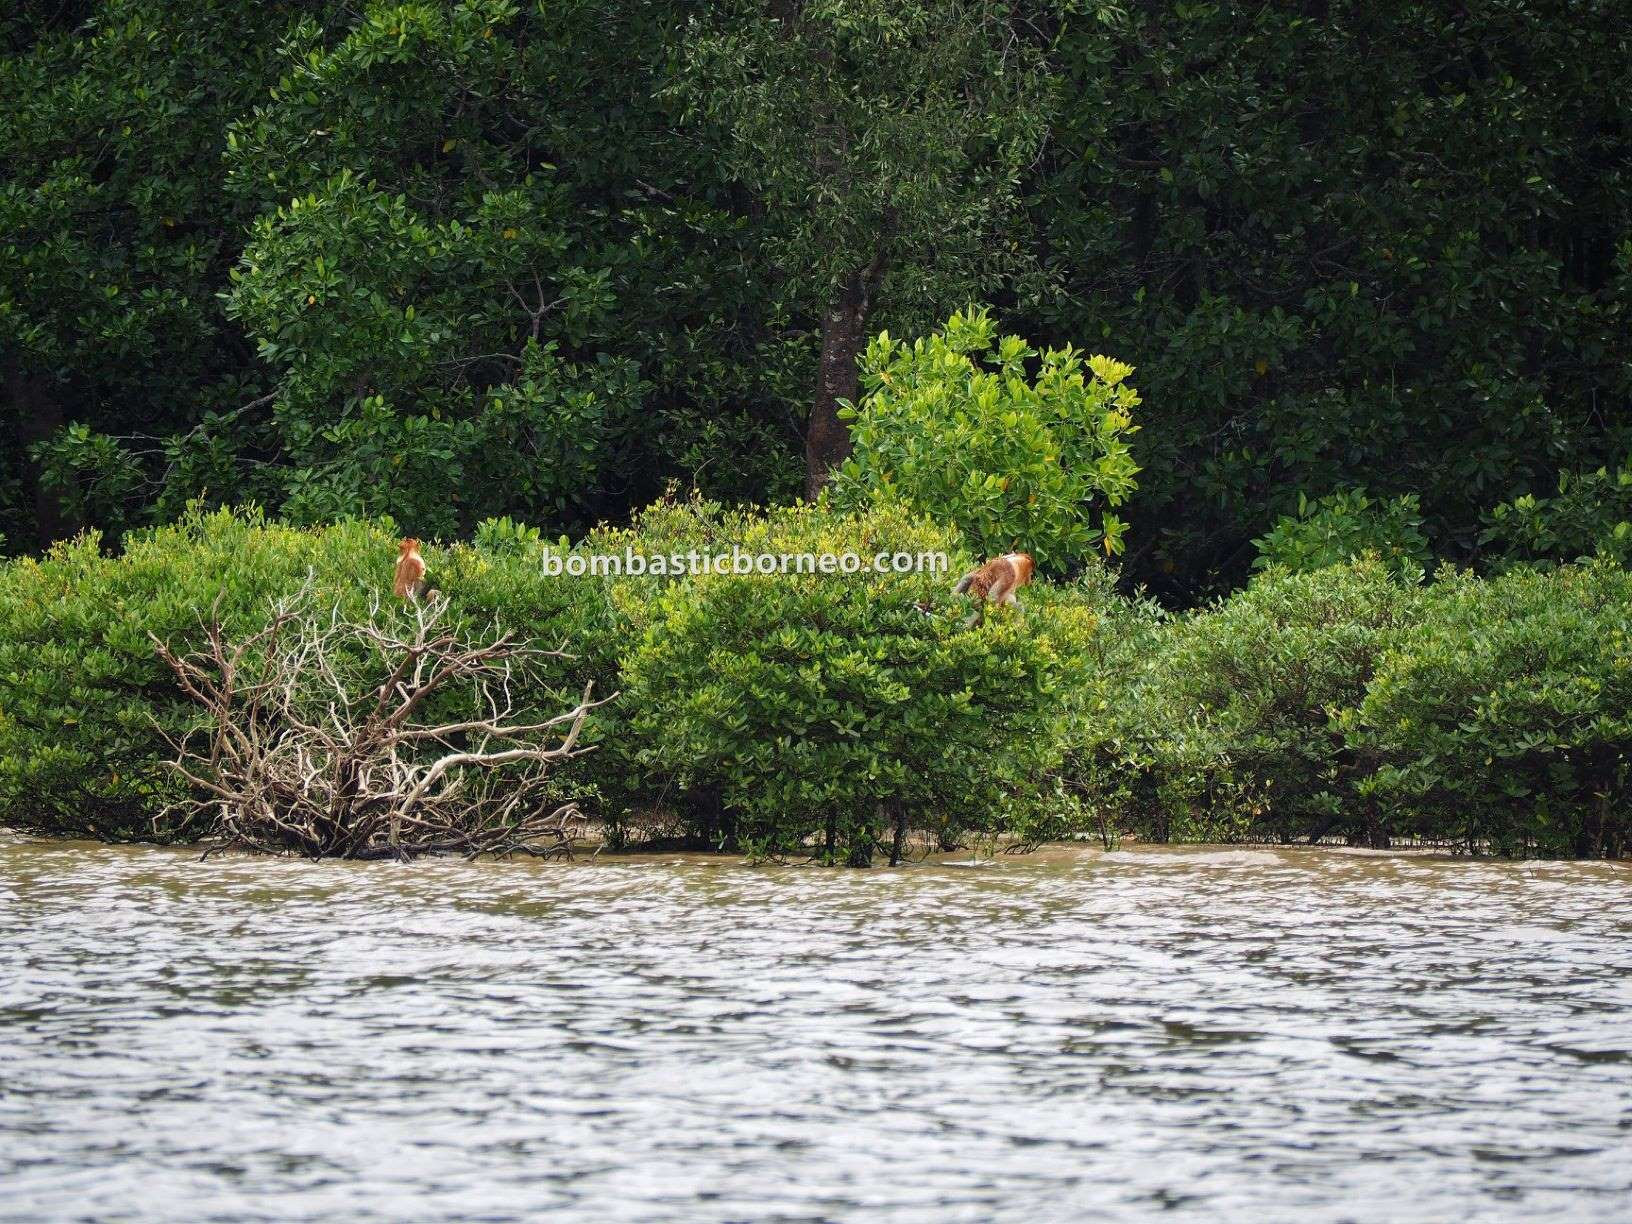 Pulau, boat ride, jelajah, exploration, adventure, nature, outdoor, Monyet Belanda, wildlife, tourist attraction, Travel Guide, Cross Border, Borneo, 婆罗洲长鼻猴, 沙巴旅游景点,